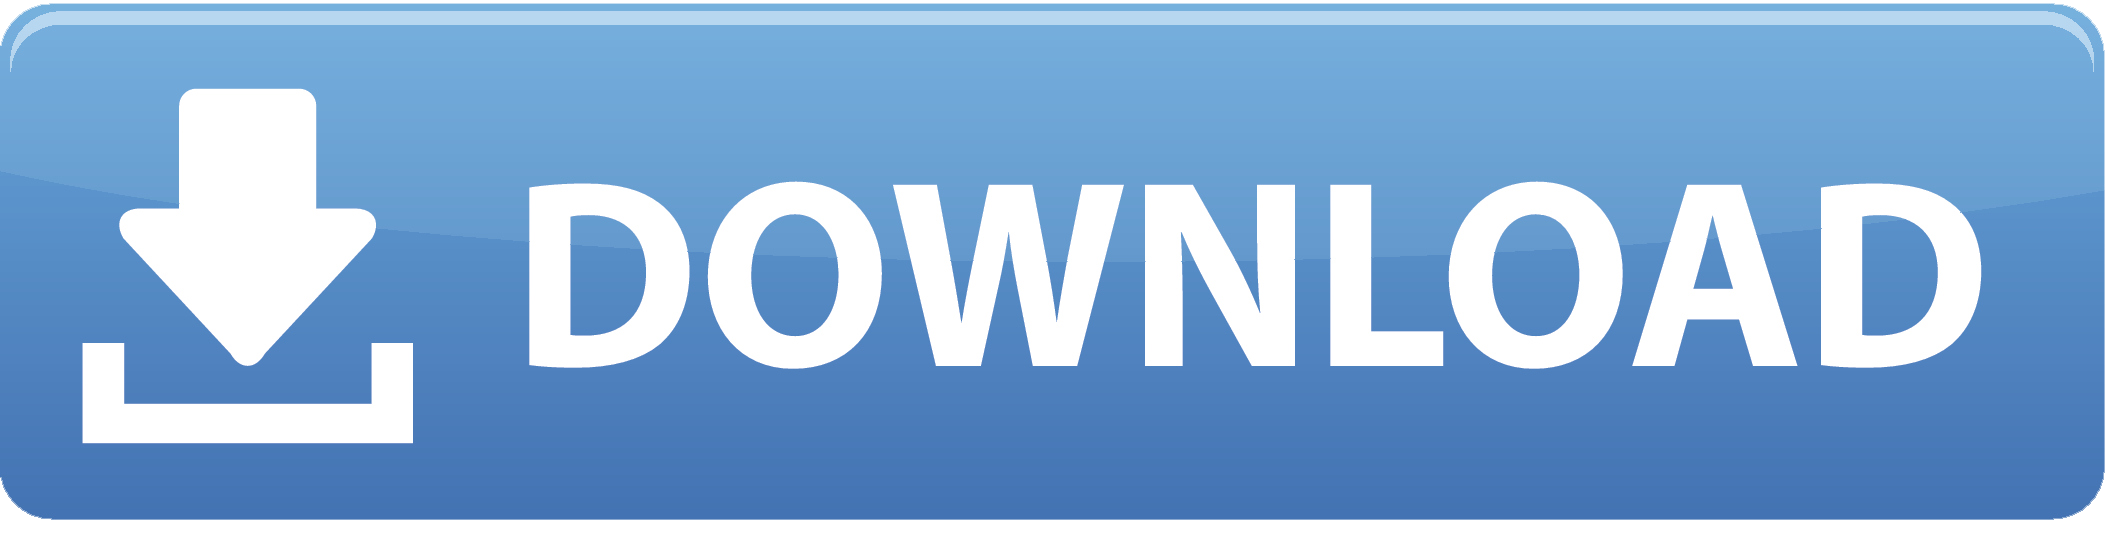 download-now-button-blue-png